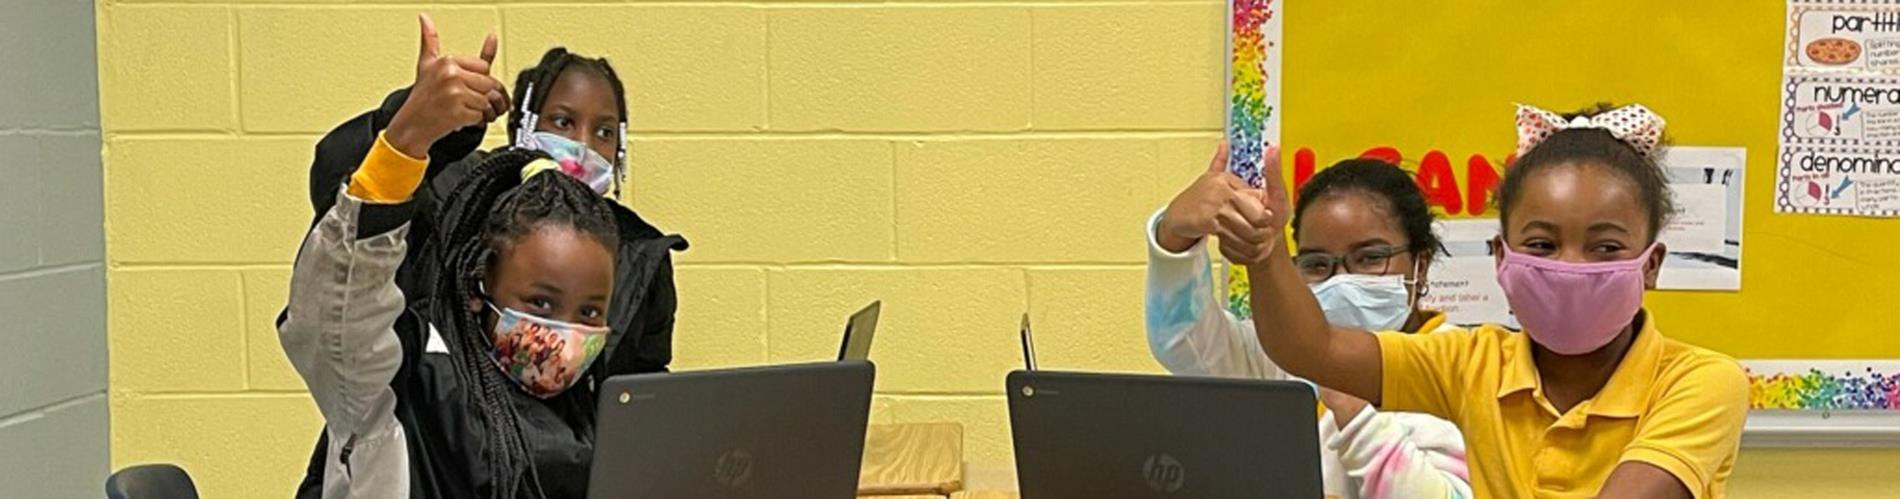 Students with their Chromebooks